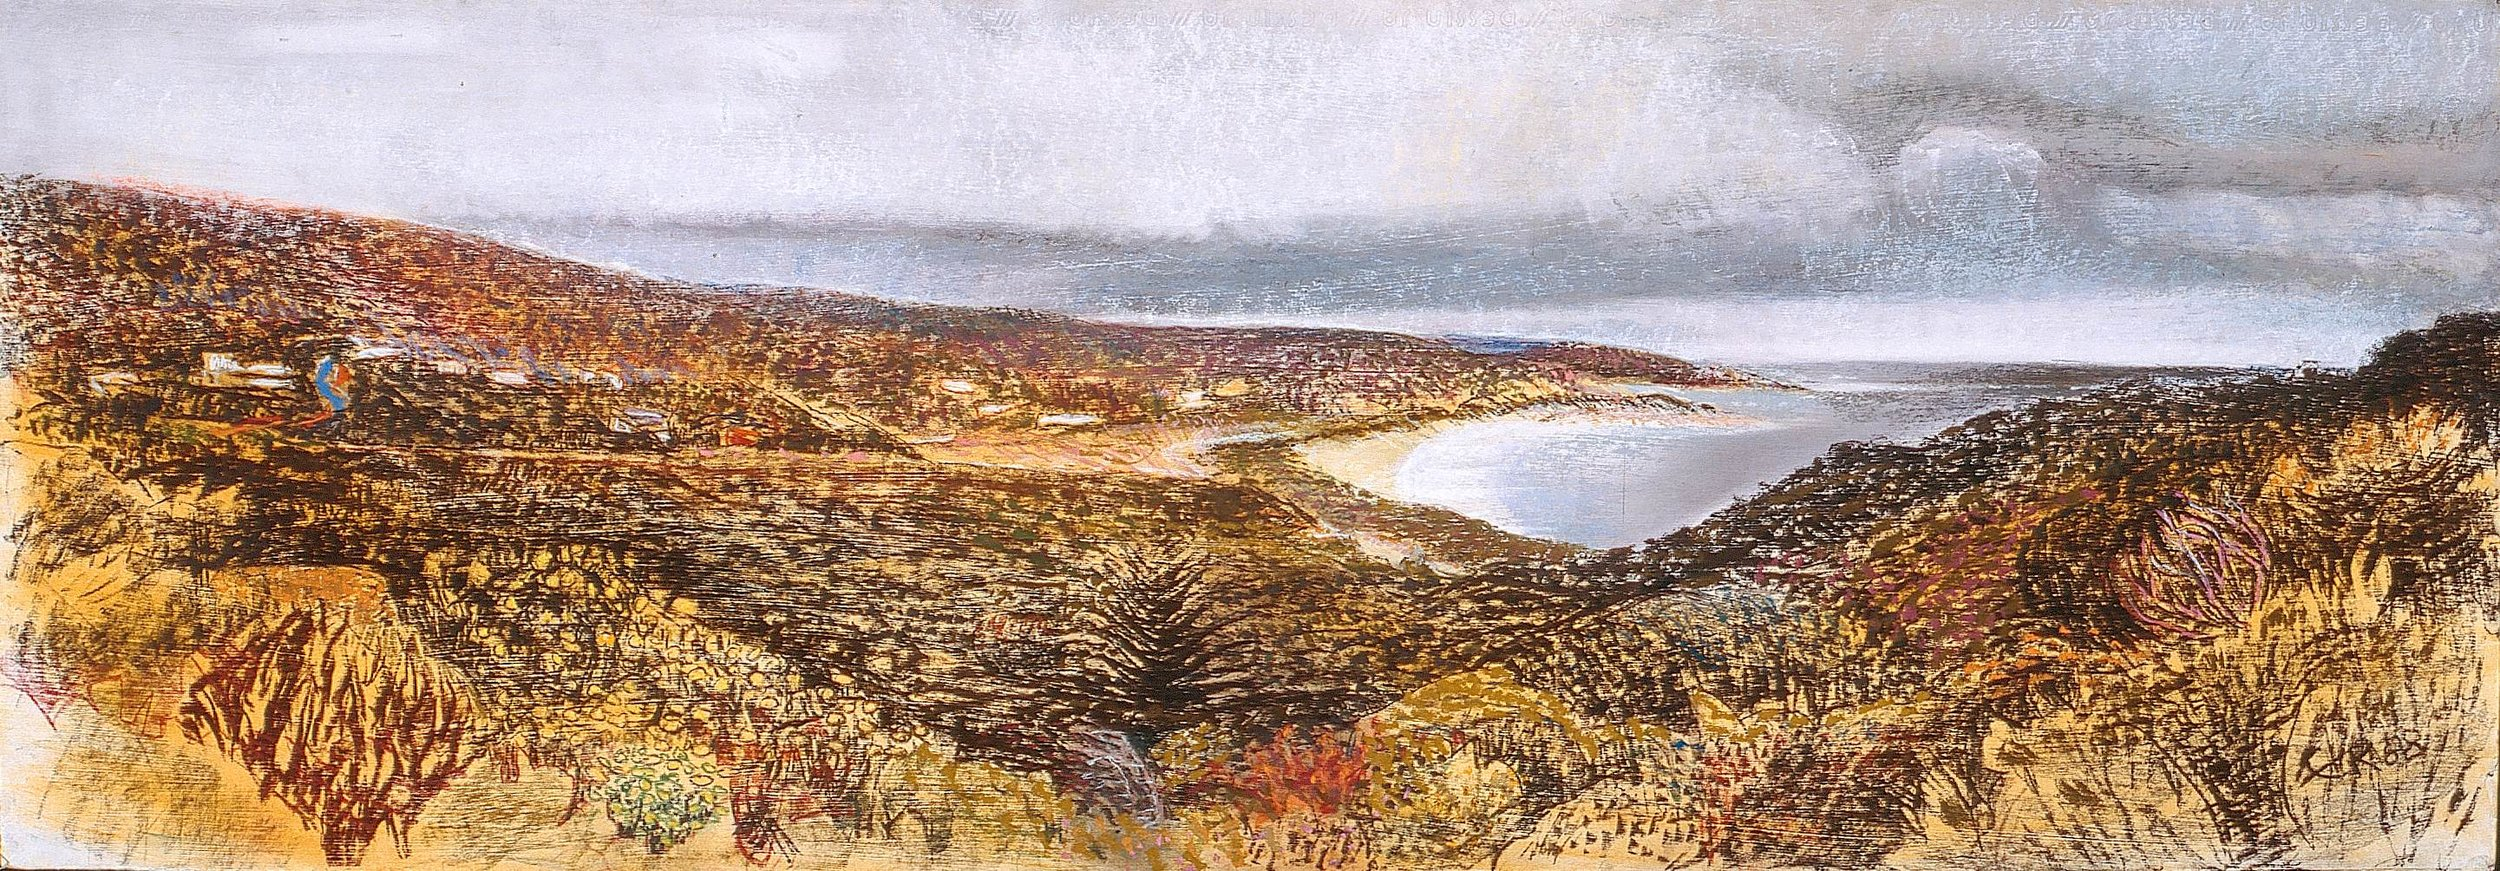 South to Prevelly 1988, pastel on Arches paper, 45 x 110cm. Private Collection